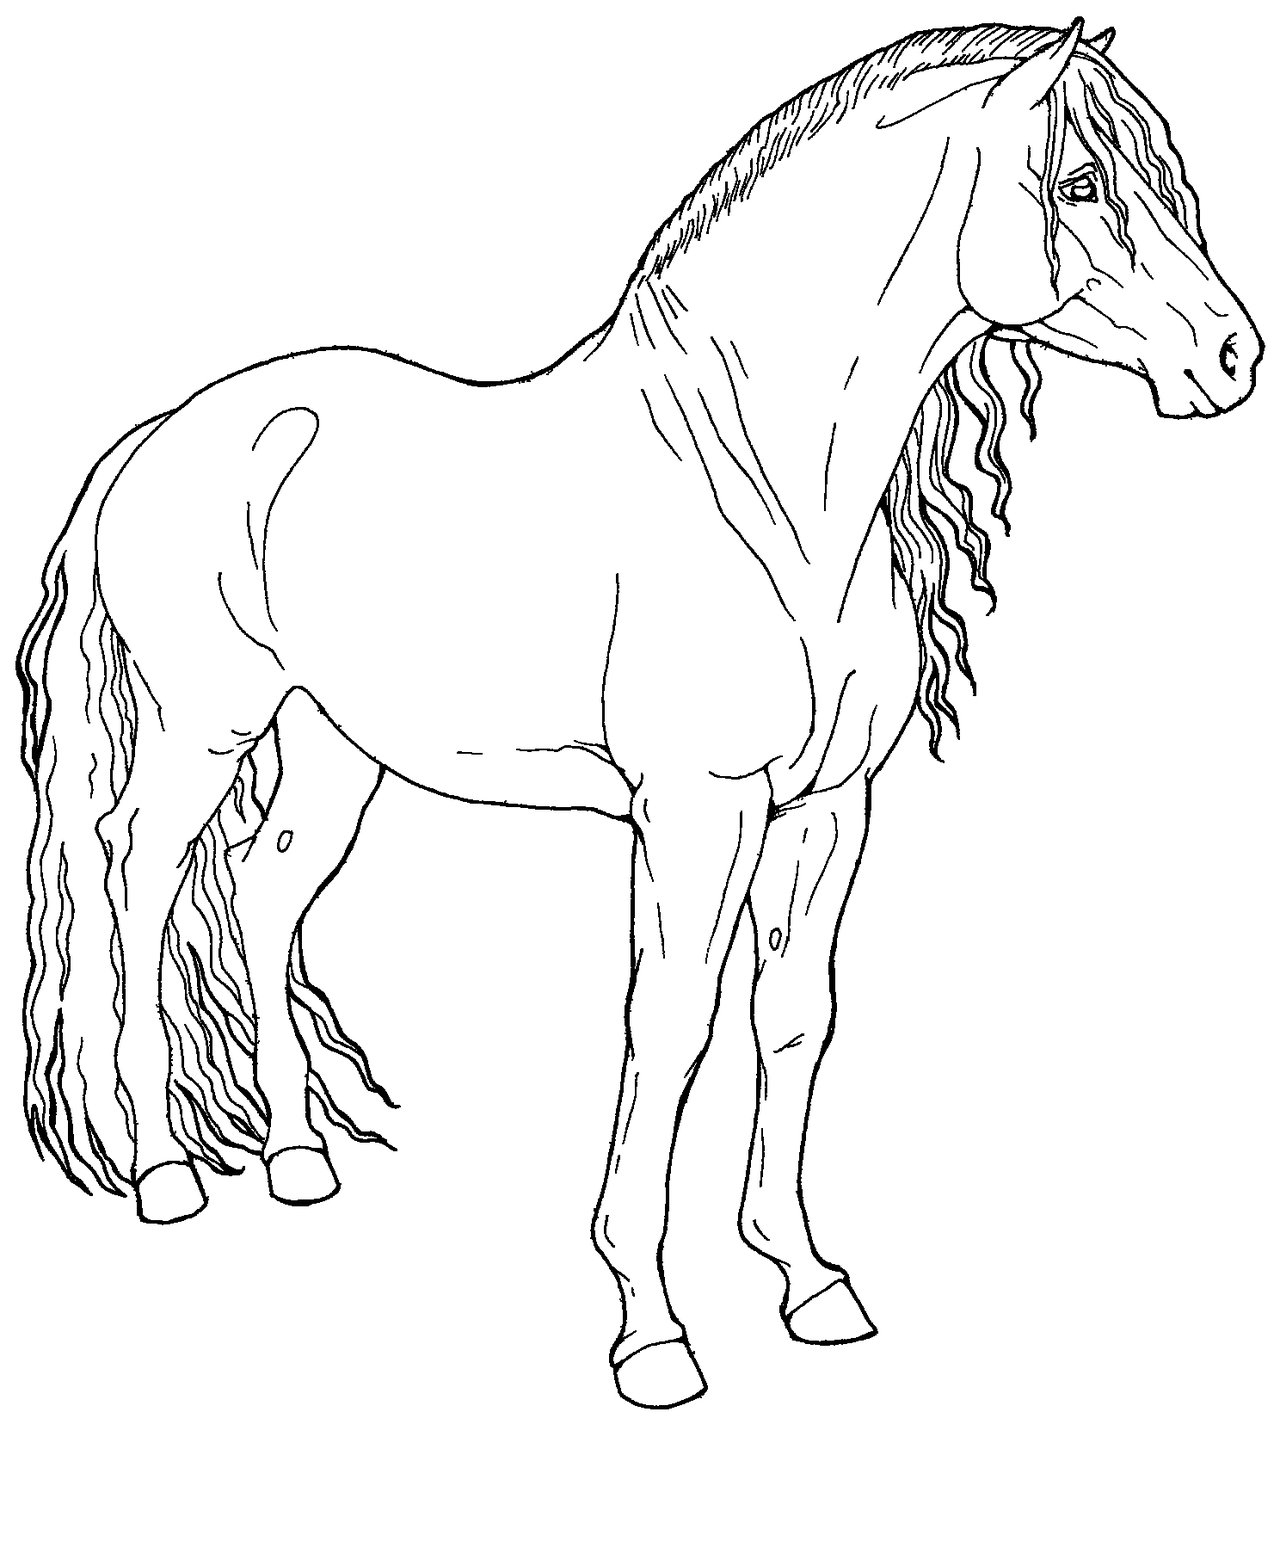 Coloriage Cheval Le Ranch.Dessin A Colorier Playmobil Beau Stock Luxe Coloriage A Imprimer Le